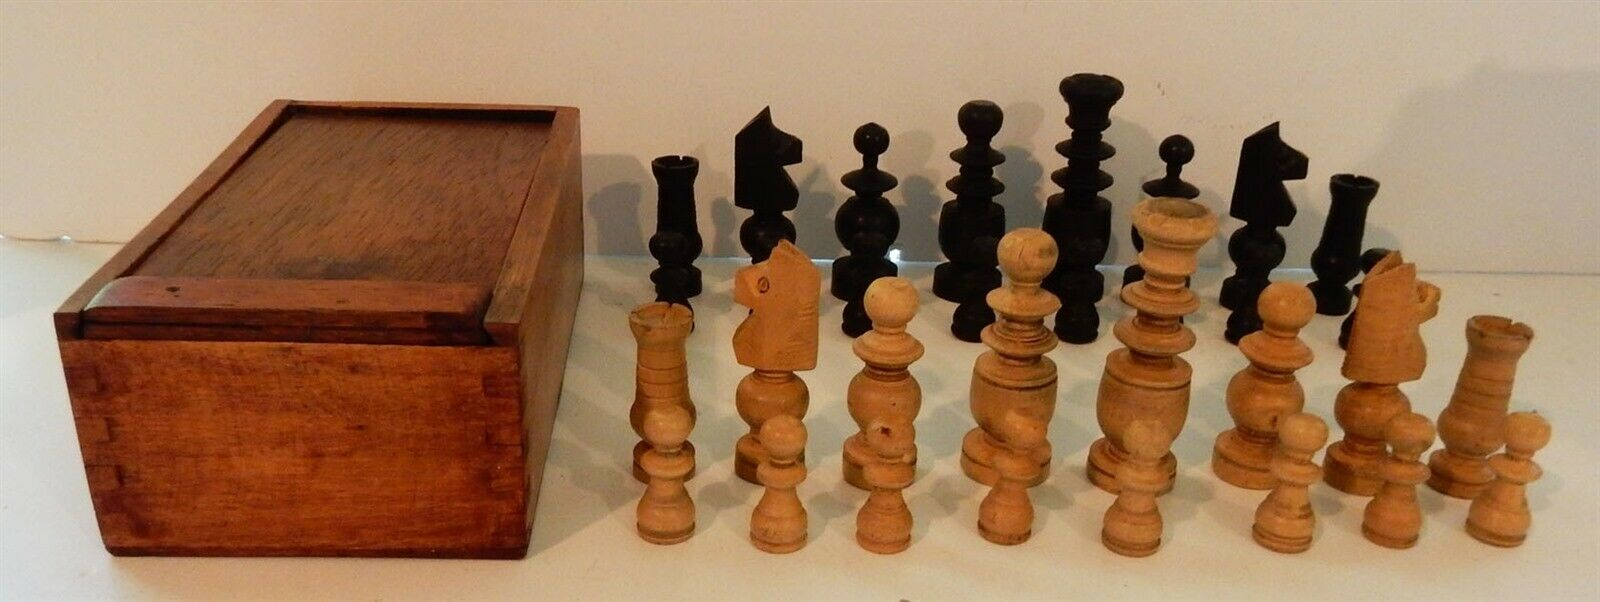 Vintage Hefatto European Regency  Style Chess Set Finger Joint Case from Engle  a buon mercato